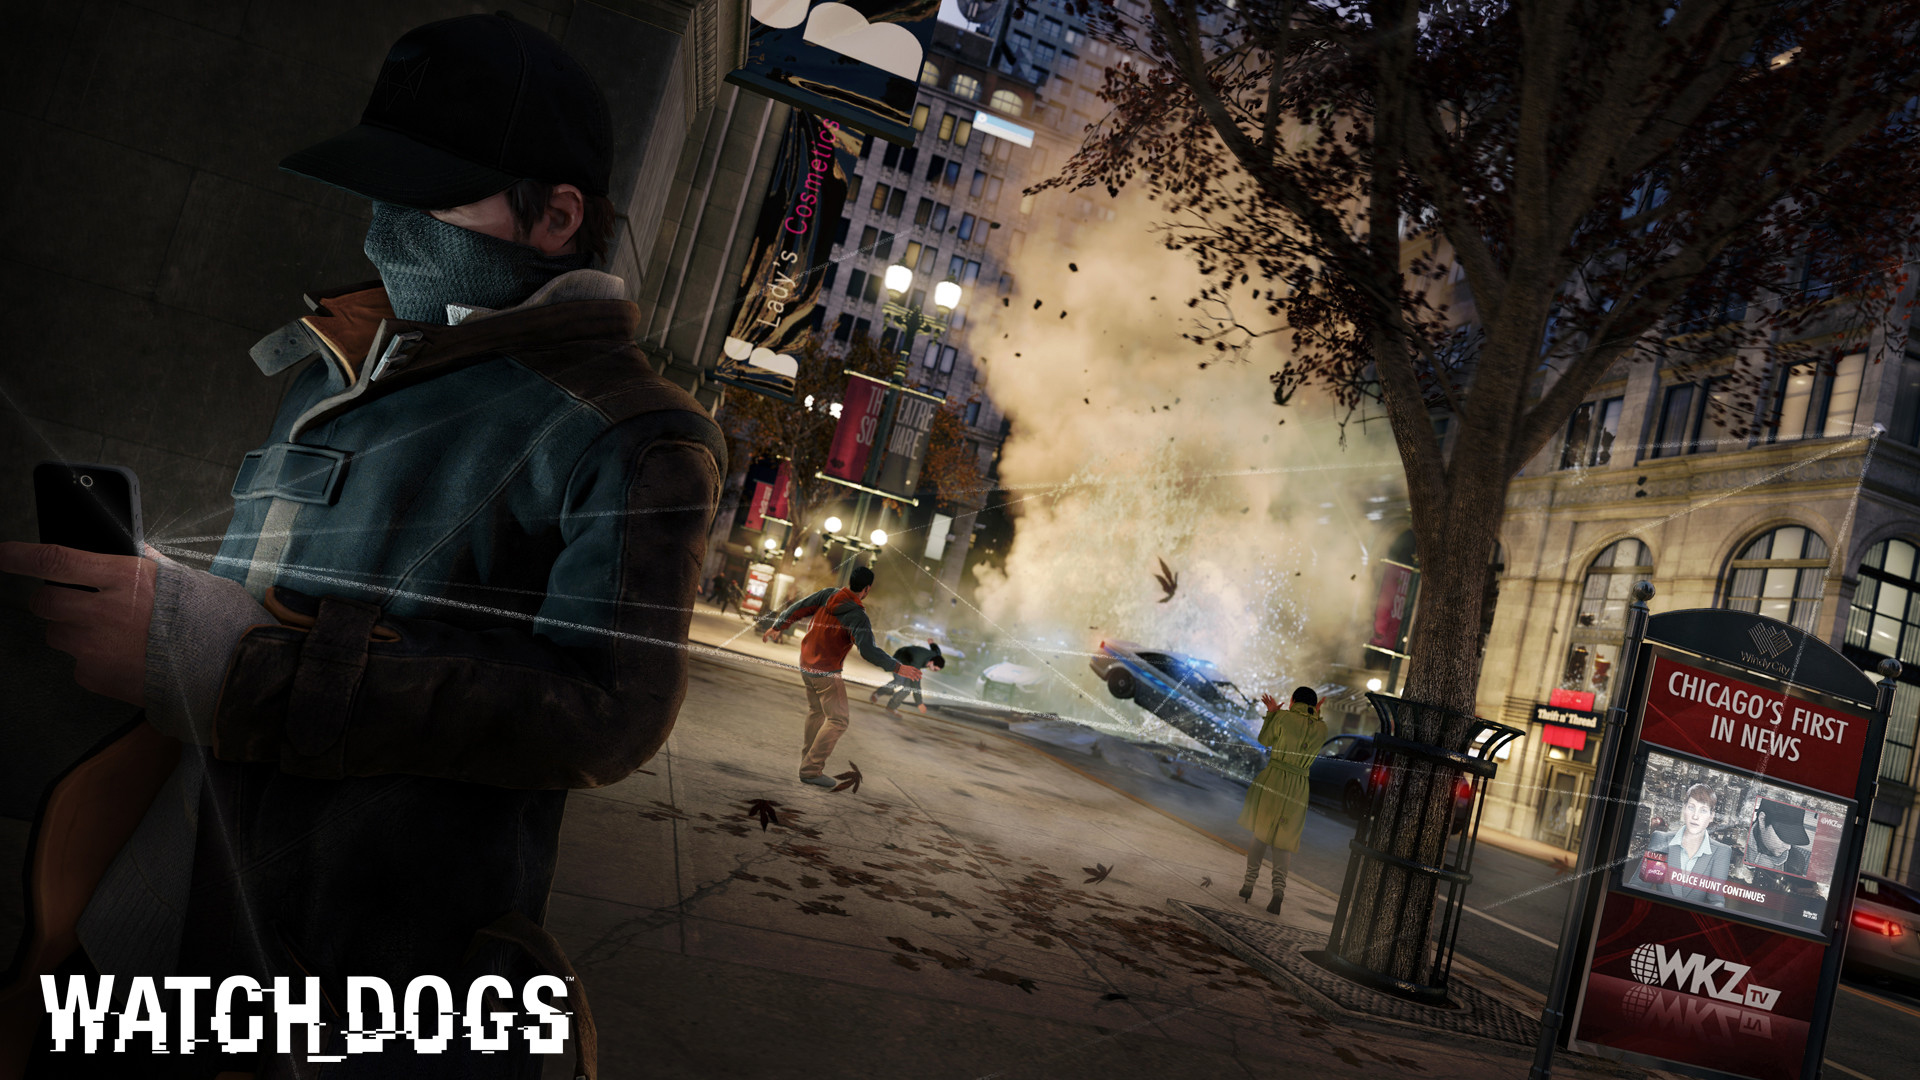 Watch Dogs Game 21 Wallpaper HD